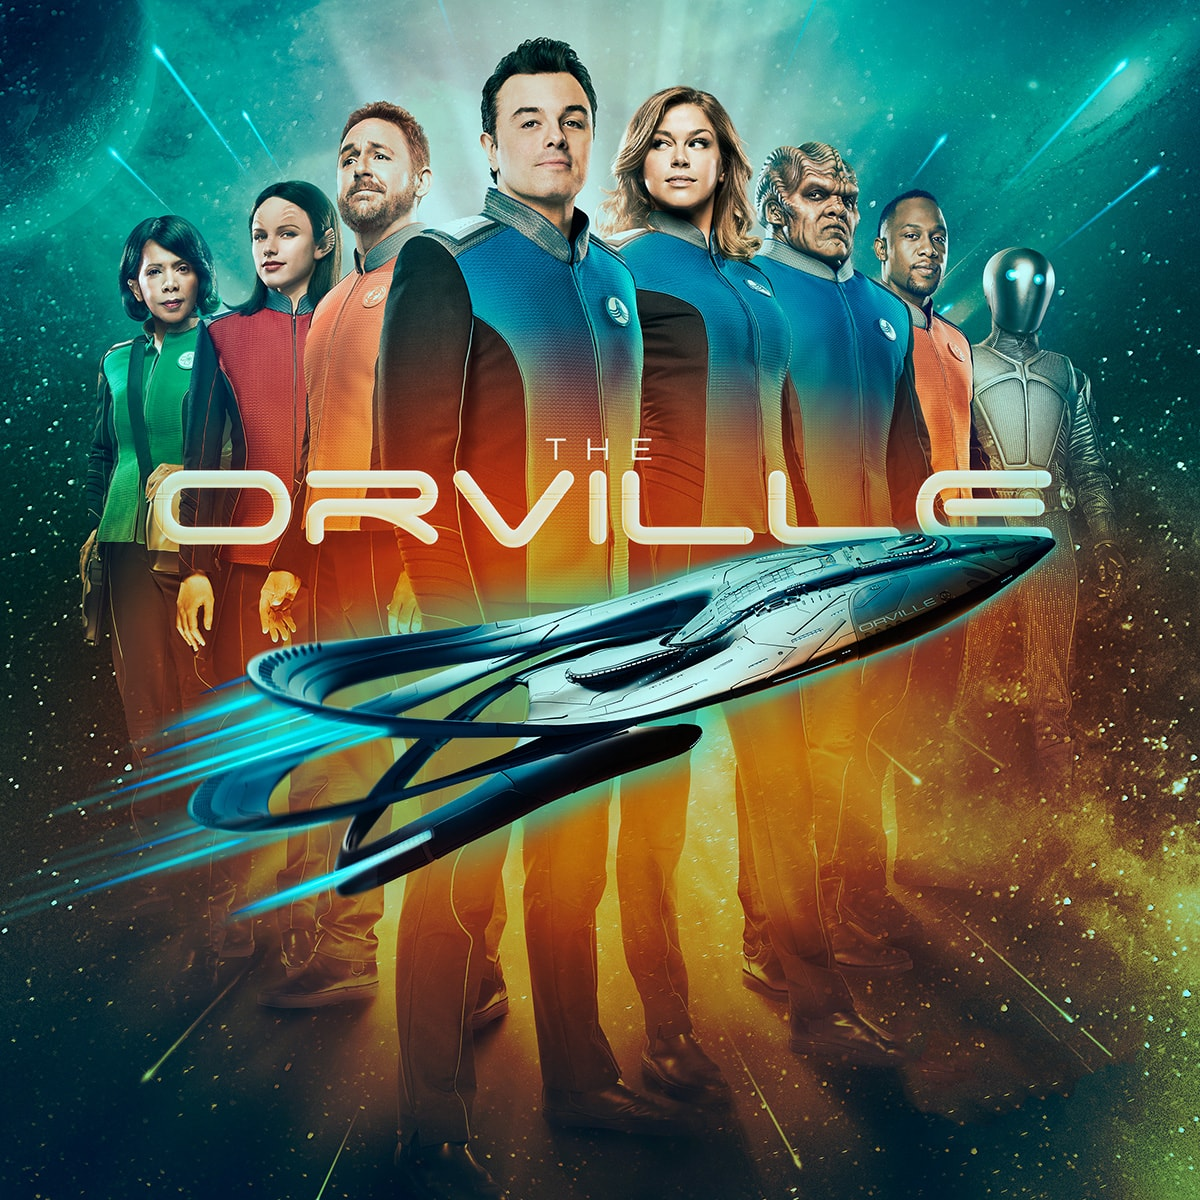 The Orville Episodes